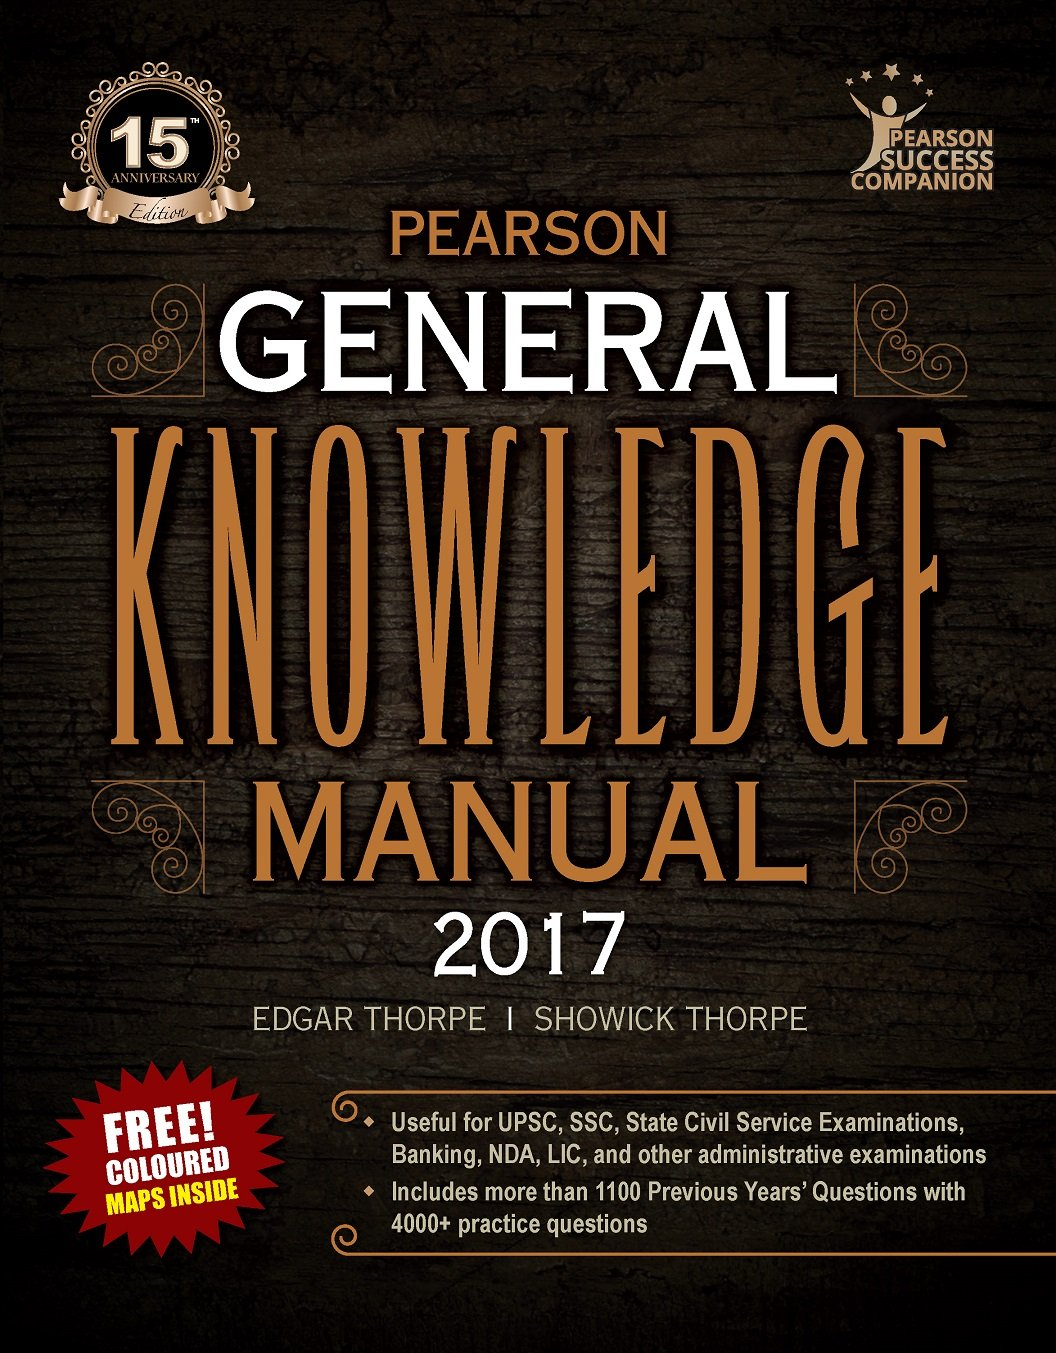 Buy The Pearson General Knowledge Manual Book Online At Low - Changes in us employment international mapping pearson education inc